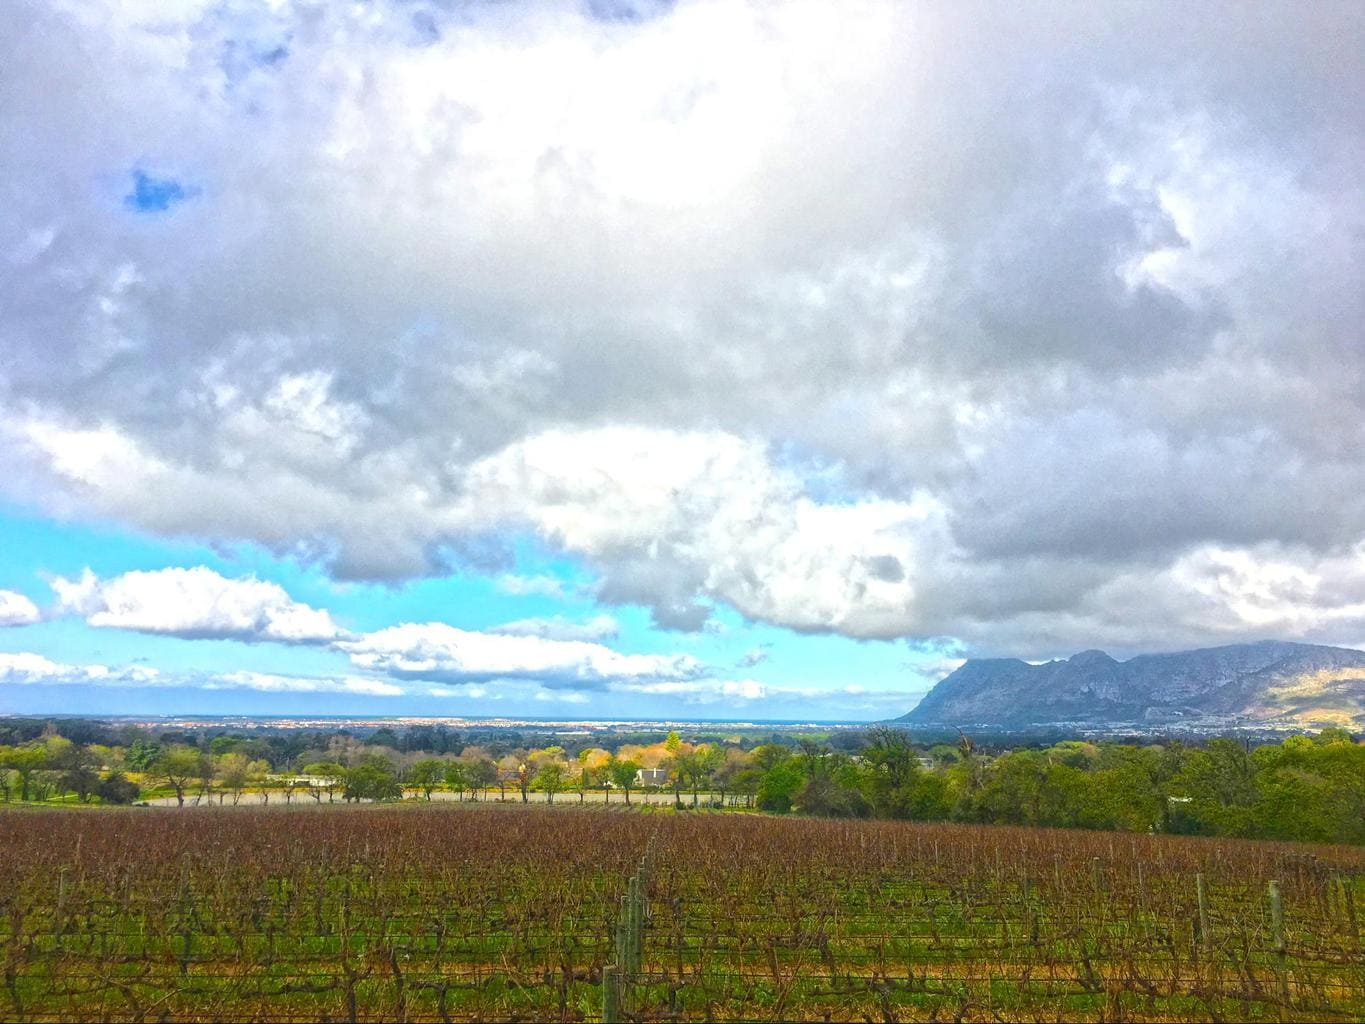 Views at Groot Constantia